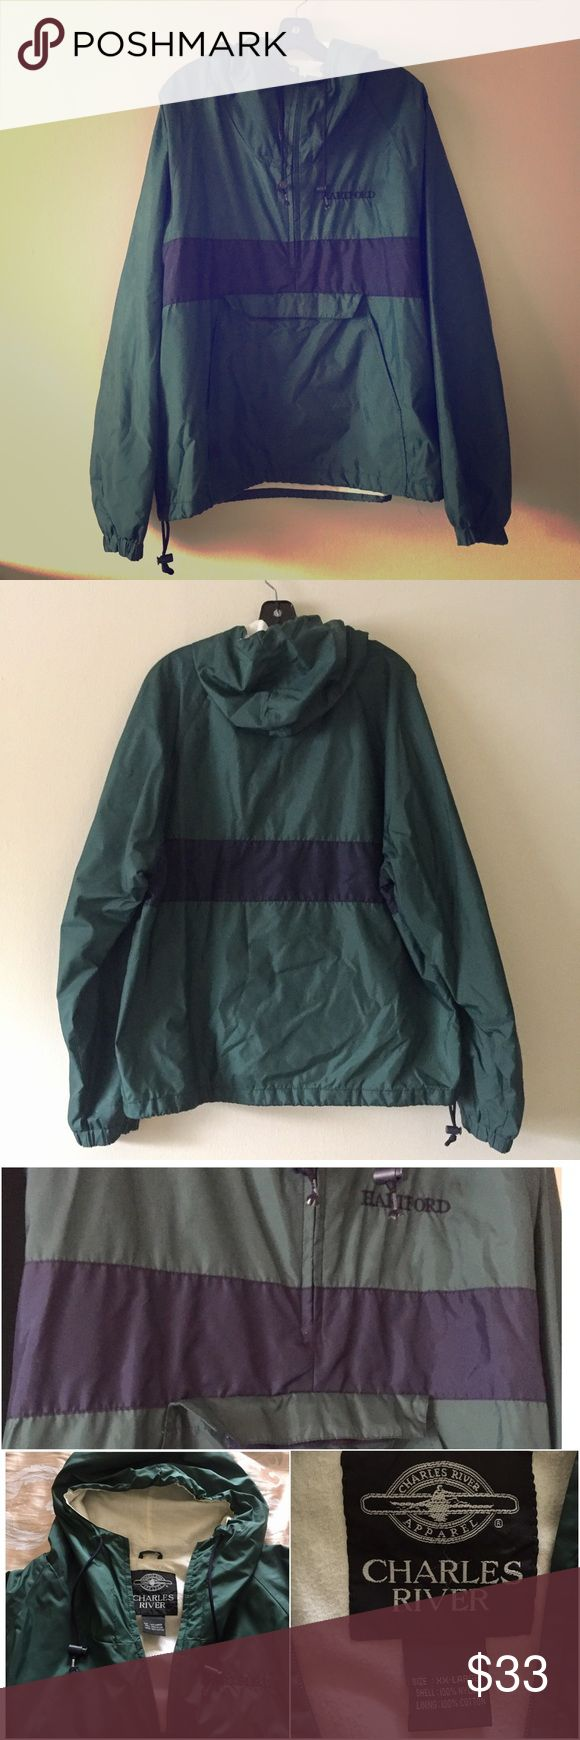 Charles River Wind Breaker Pull Over Rain Jacket Men's XXL but also perfect for women. Hartford text on the left.  In an excellent condition.                                   🖇 The color is green with navy blur stripe.  🖇 Elastiv wrists band 🖇 Pull Chord Hood 🖇 Front pocket from 2 sides + enclosed front pocket Charles River Jackets & Coats Raincoats